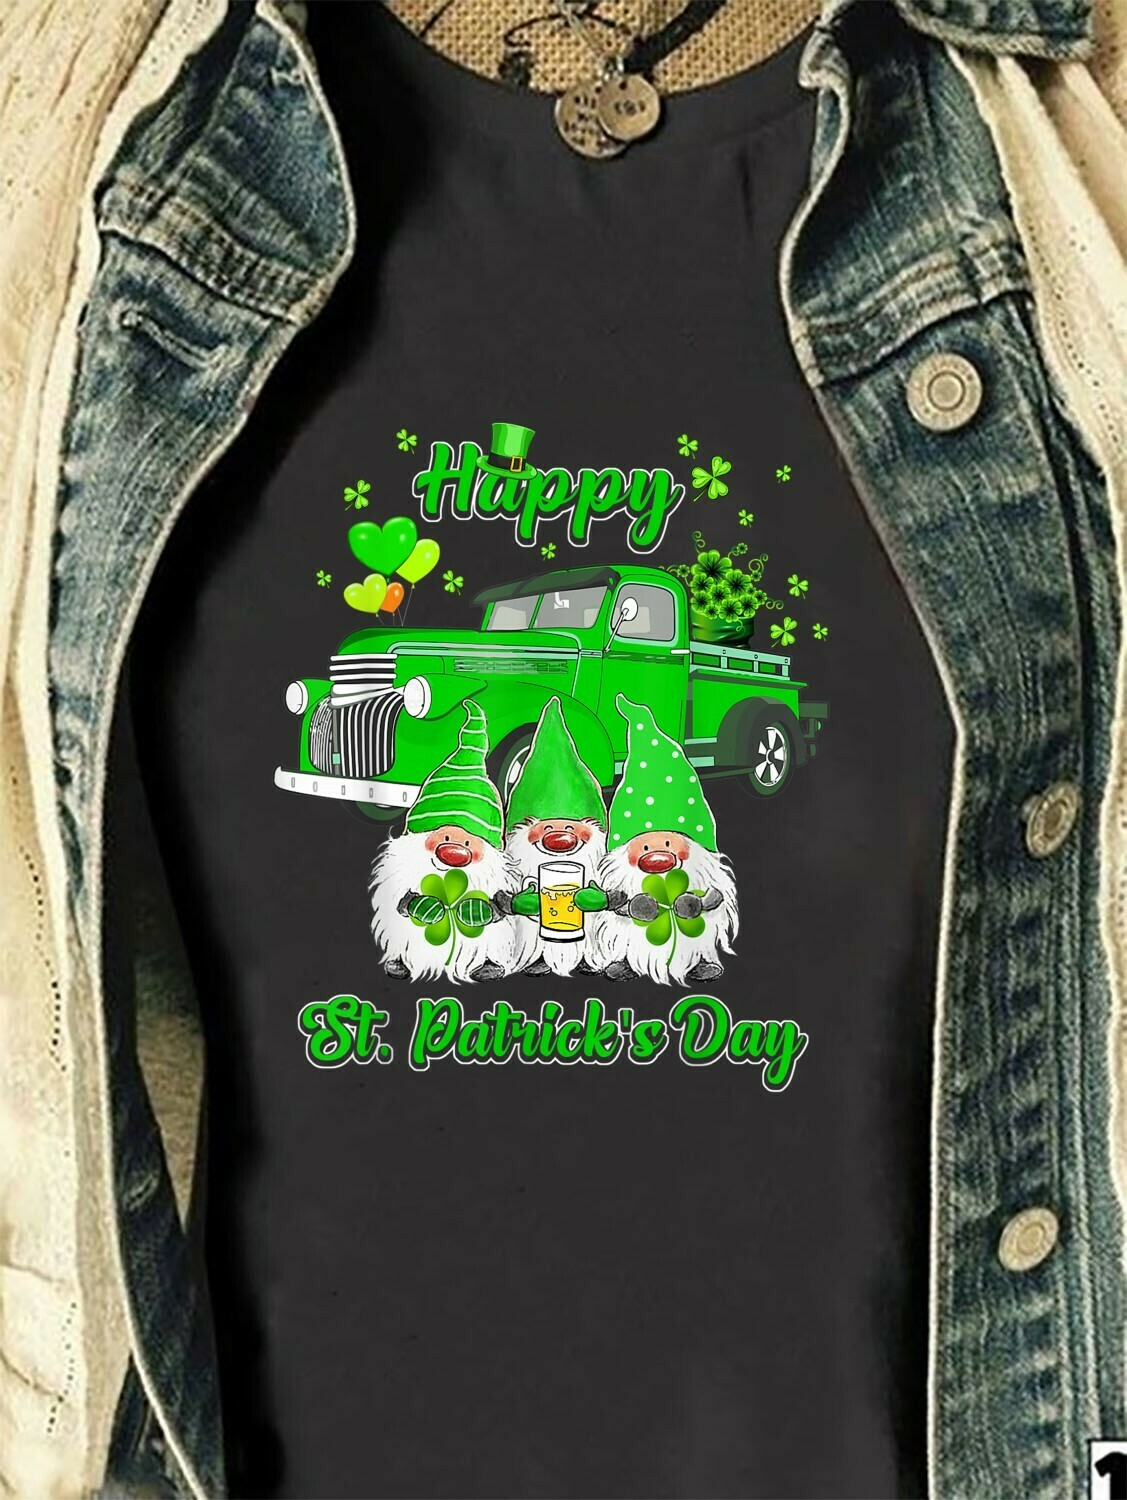 Three Gnomes Holding Clover Shamrocks Happy St Patrick's Day,Truck Full Of Lucky Charm Gnomes Leprechaun Funny  T-Shirt Hoodie Sweatshirt Sweater Tee Kids Youth Gifts Jolly Family Gifts